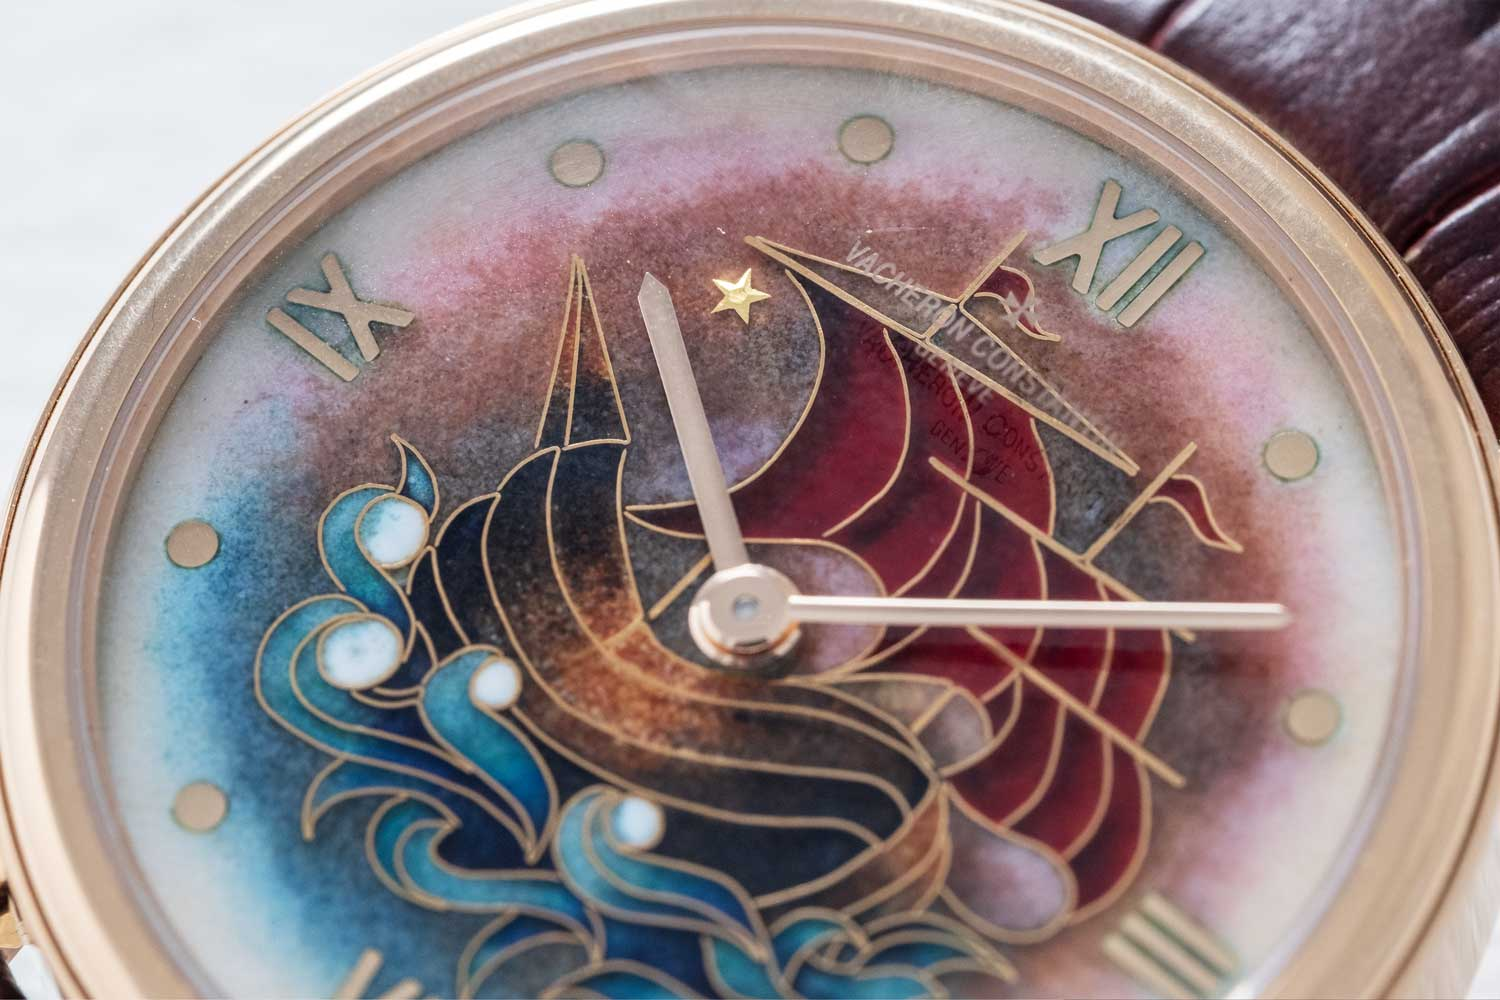 The paillon on the dial of the La Caravelle 1950 depicting the North Star - ref. 1110C/000R-B612 (Image © Revolution)